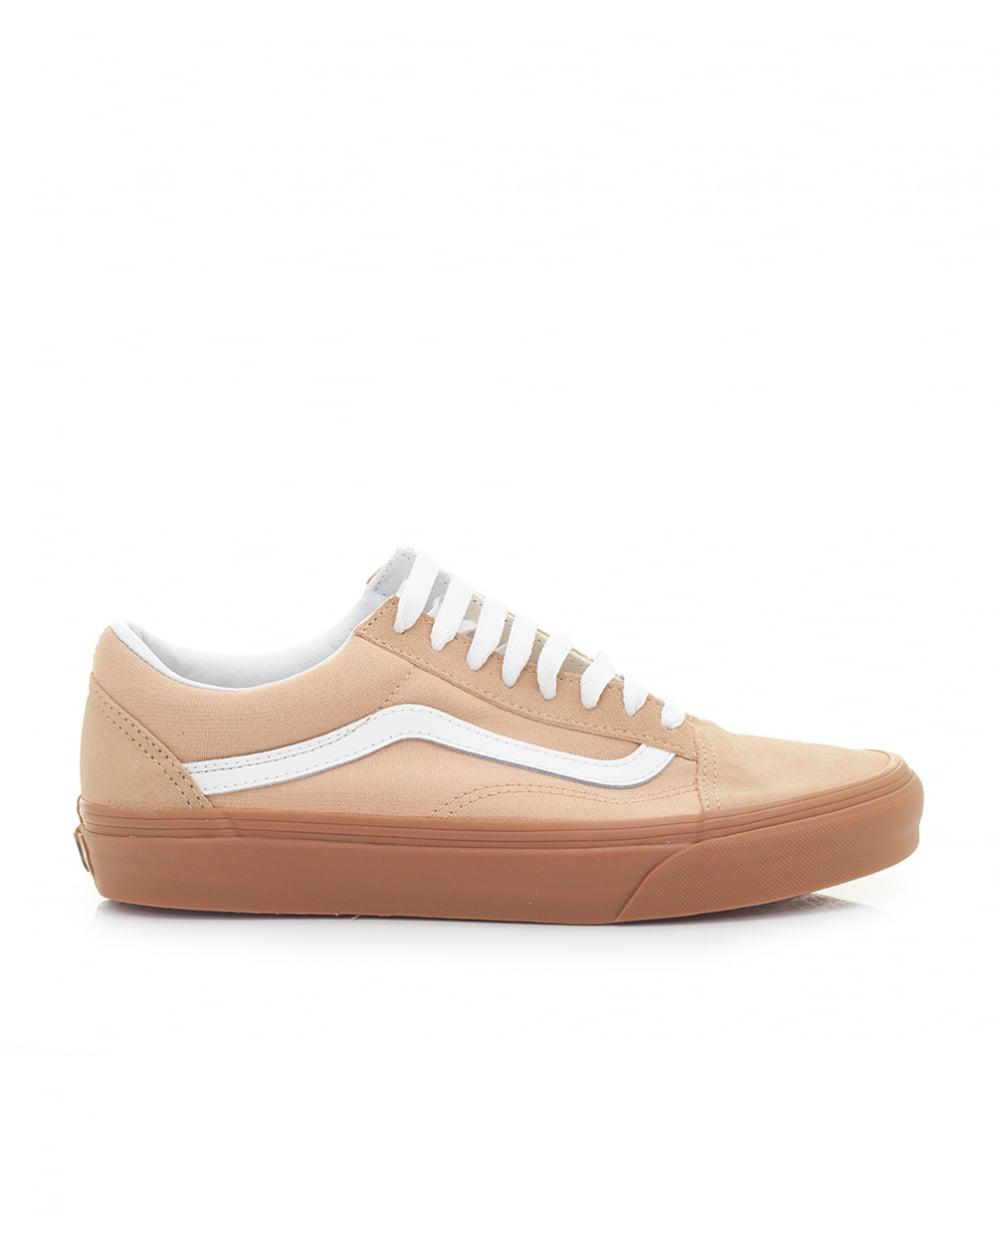 5d685566f9dc Vans Old Skool Trainers - Save 50% - Lyst